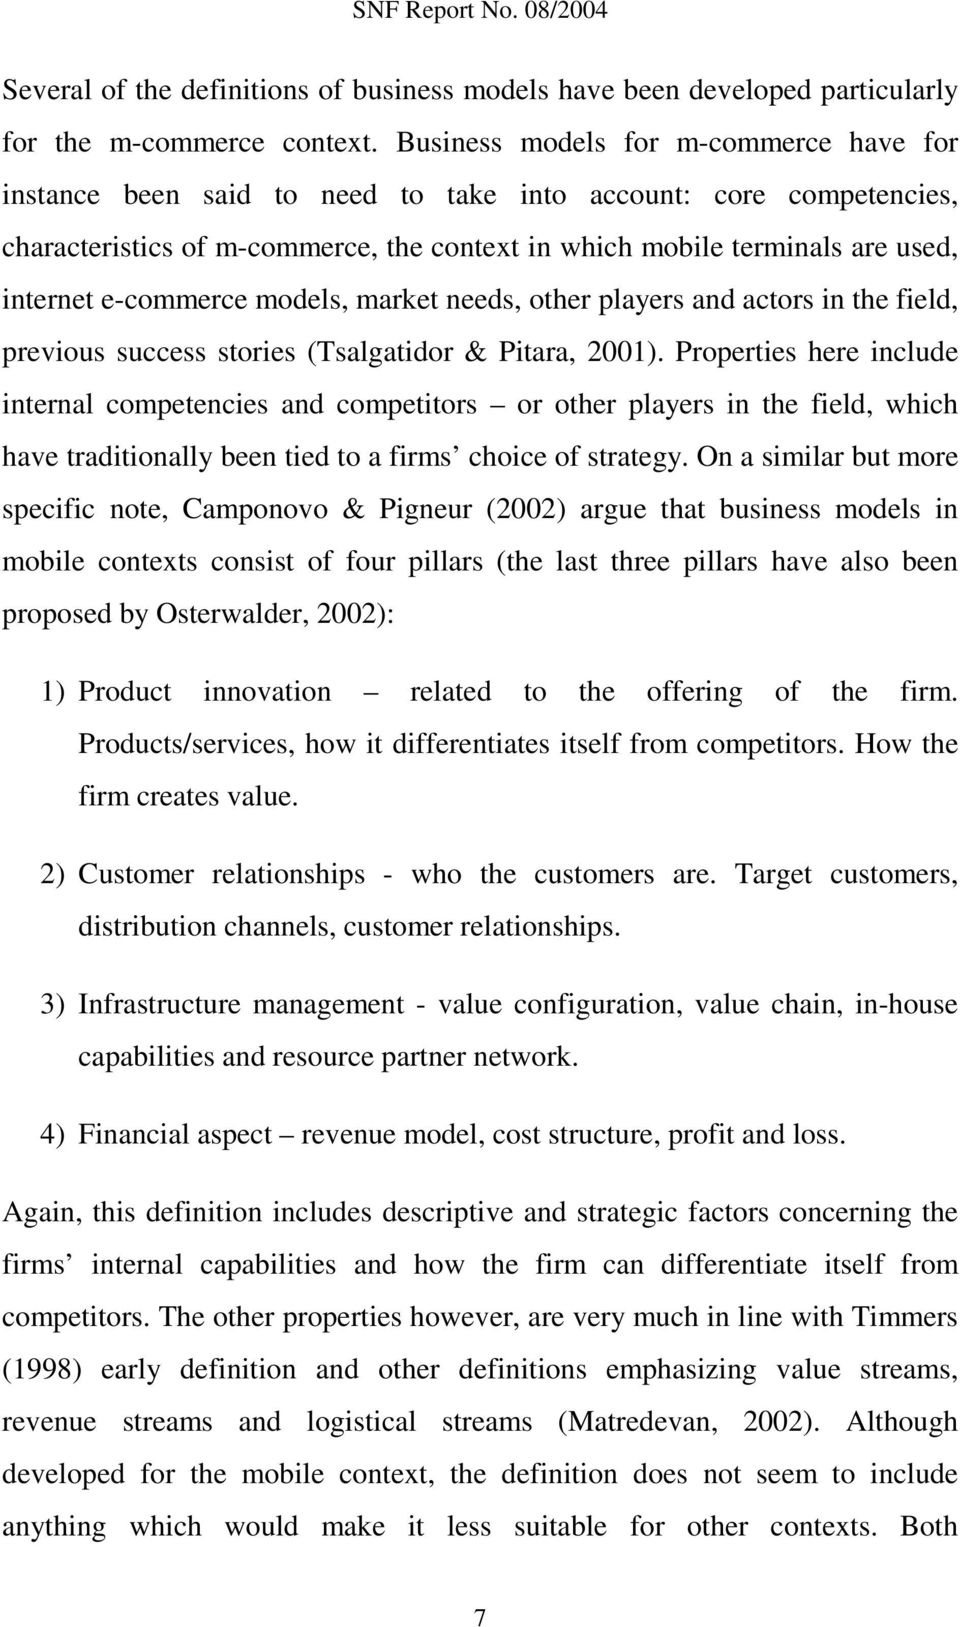 e-commerce models, market needs, other players and actors in the field, previous success stories (Tsalgatidor & Pitara, 2001).